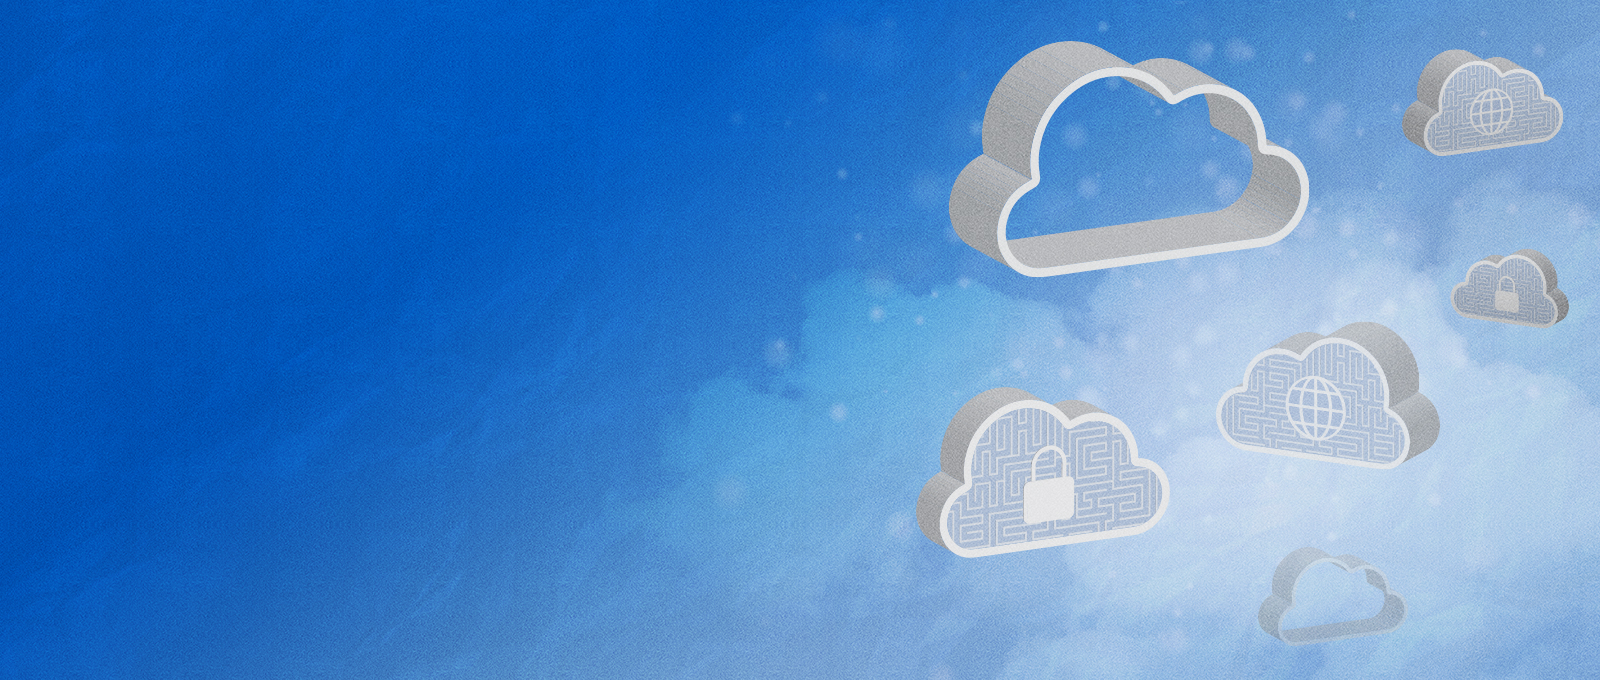 Hybrid Cloud: The Oldest New Opportunity Facing Enterprise IT